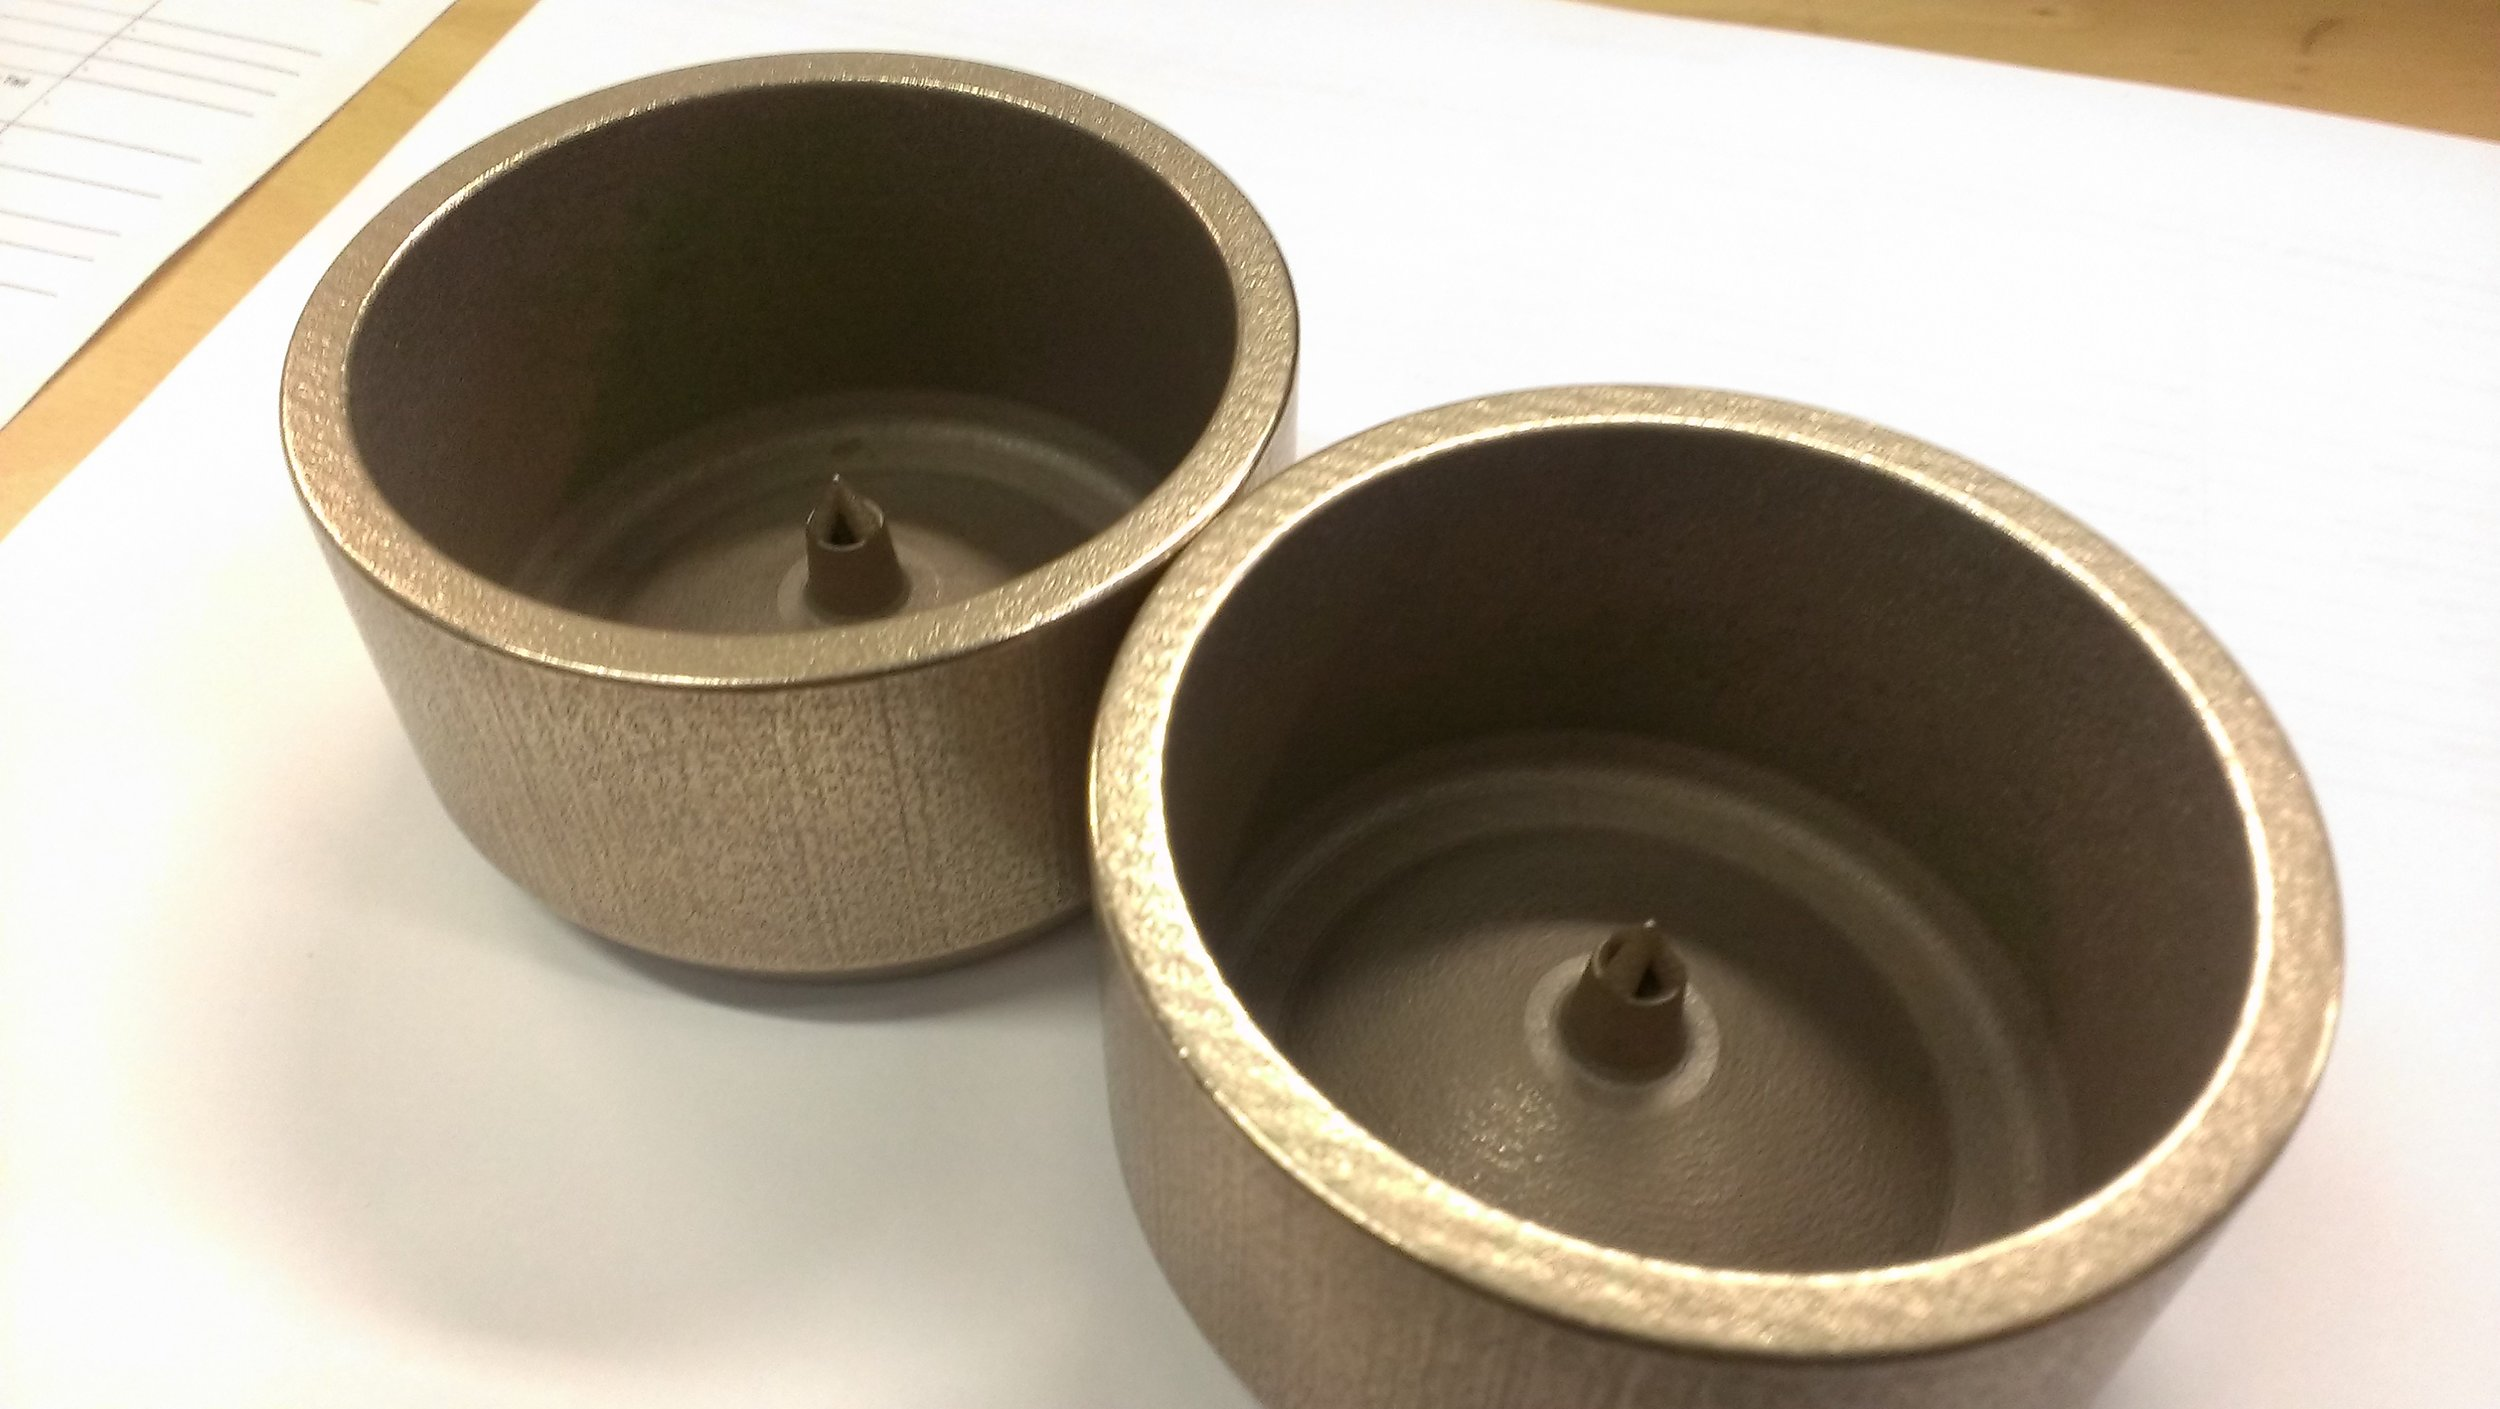 3D printed metal parts made with stainless steel bronze alloy.